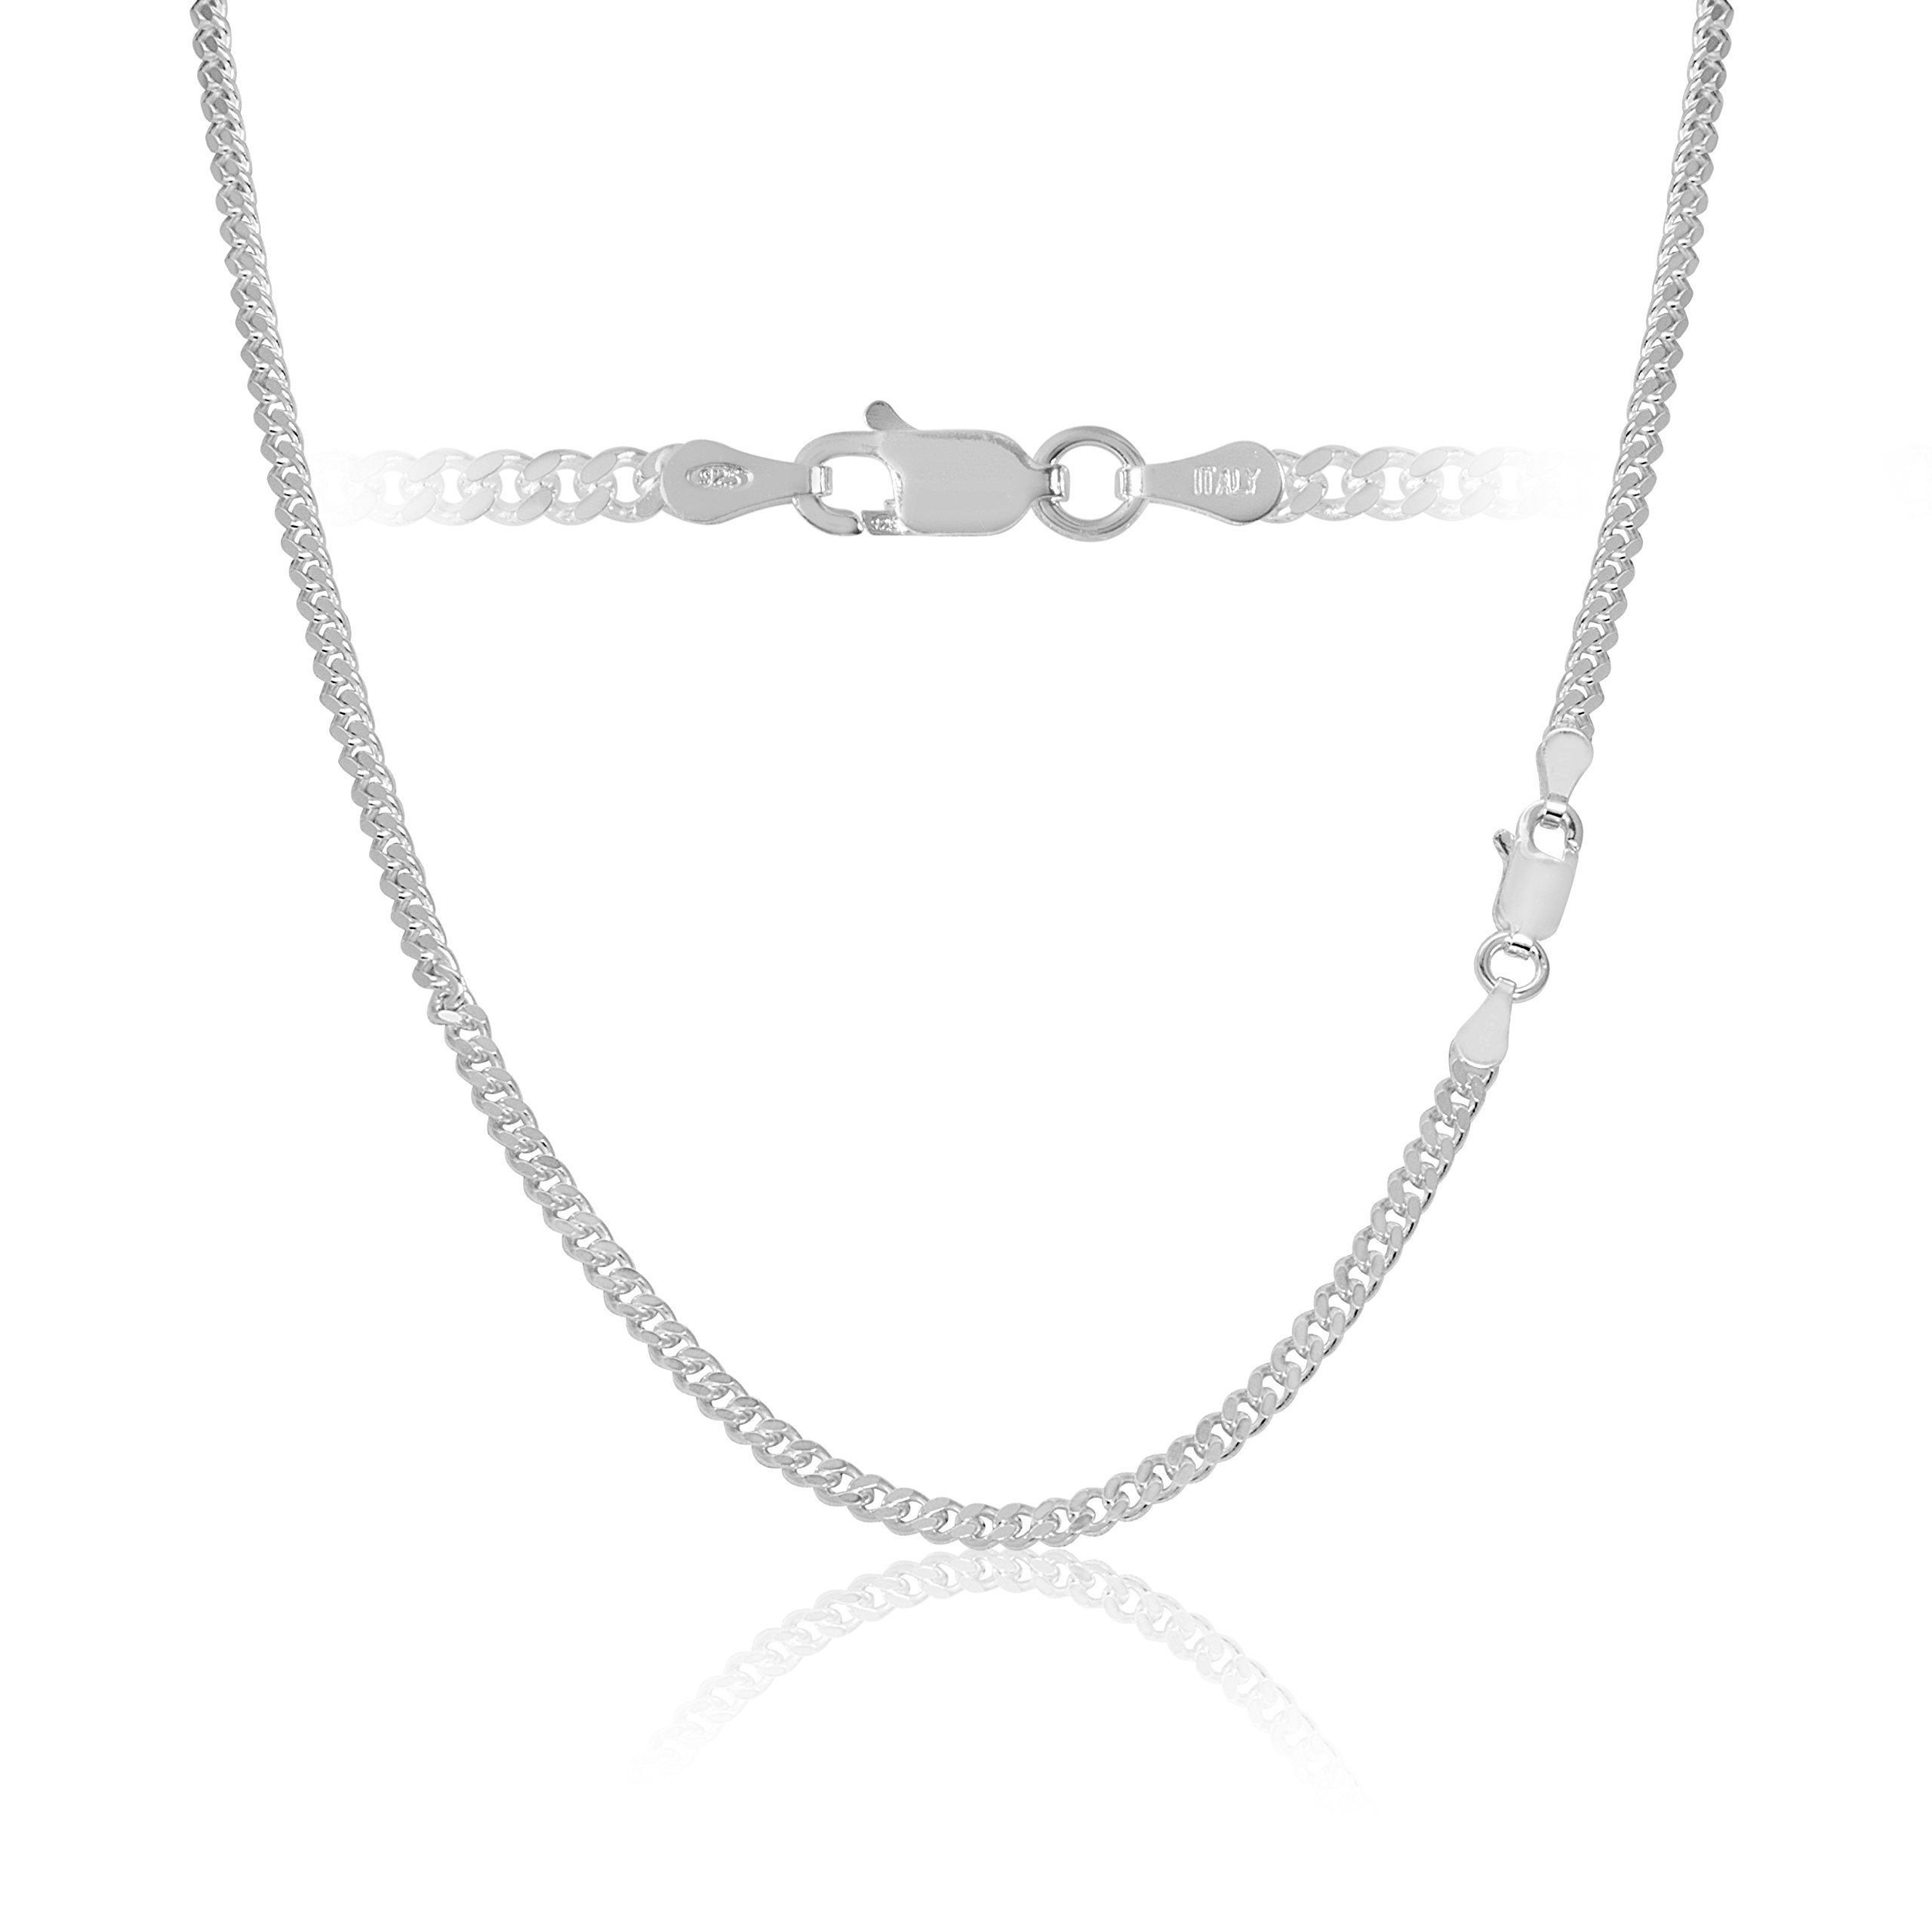 Sterling Silver Cuban Curb Link Chain Necklace Italy 3mm 36 inch